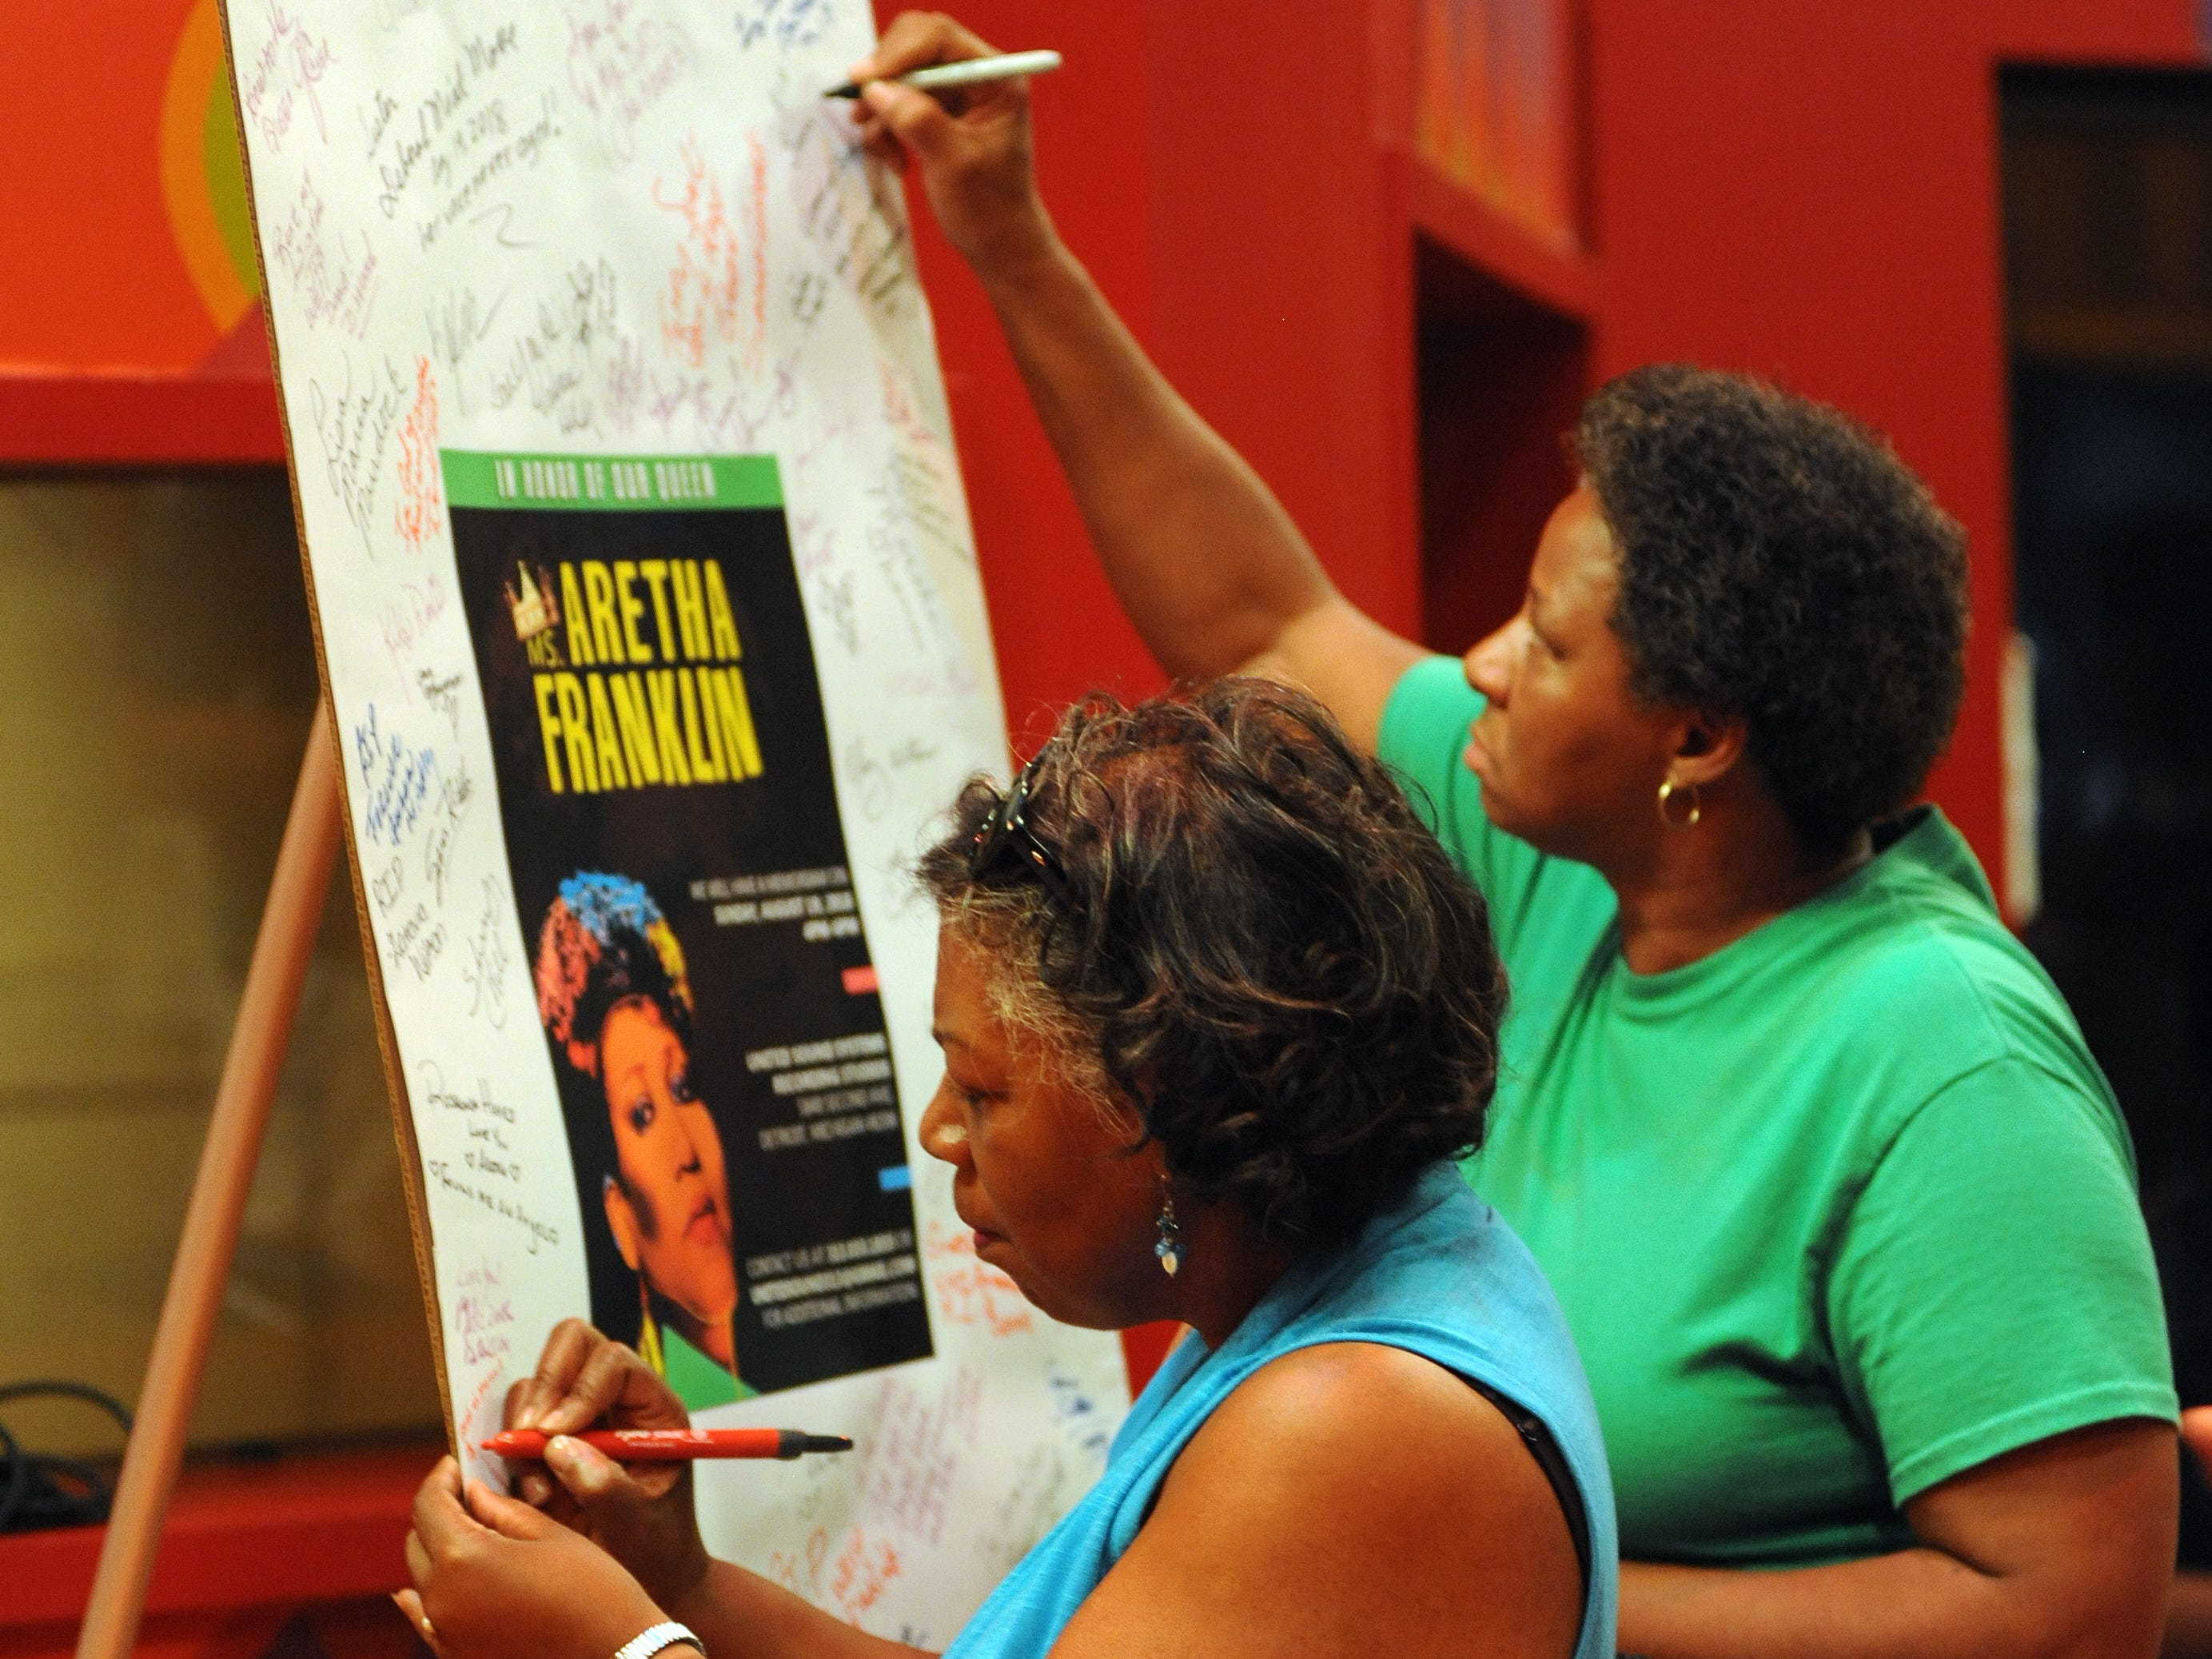 Sherry Nether of Commerce Township, Mich., signs a memorial poster of Aretha Franklin at United Sound Systems Recording Studios.